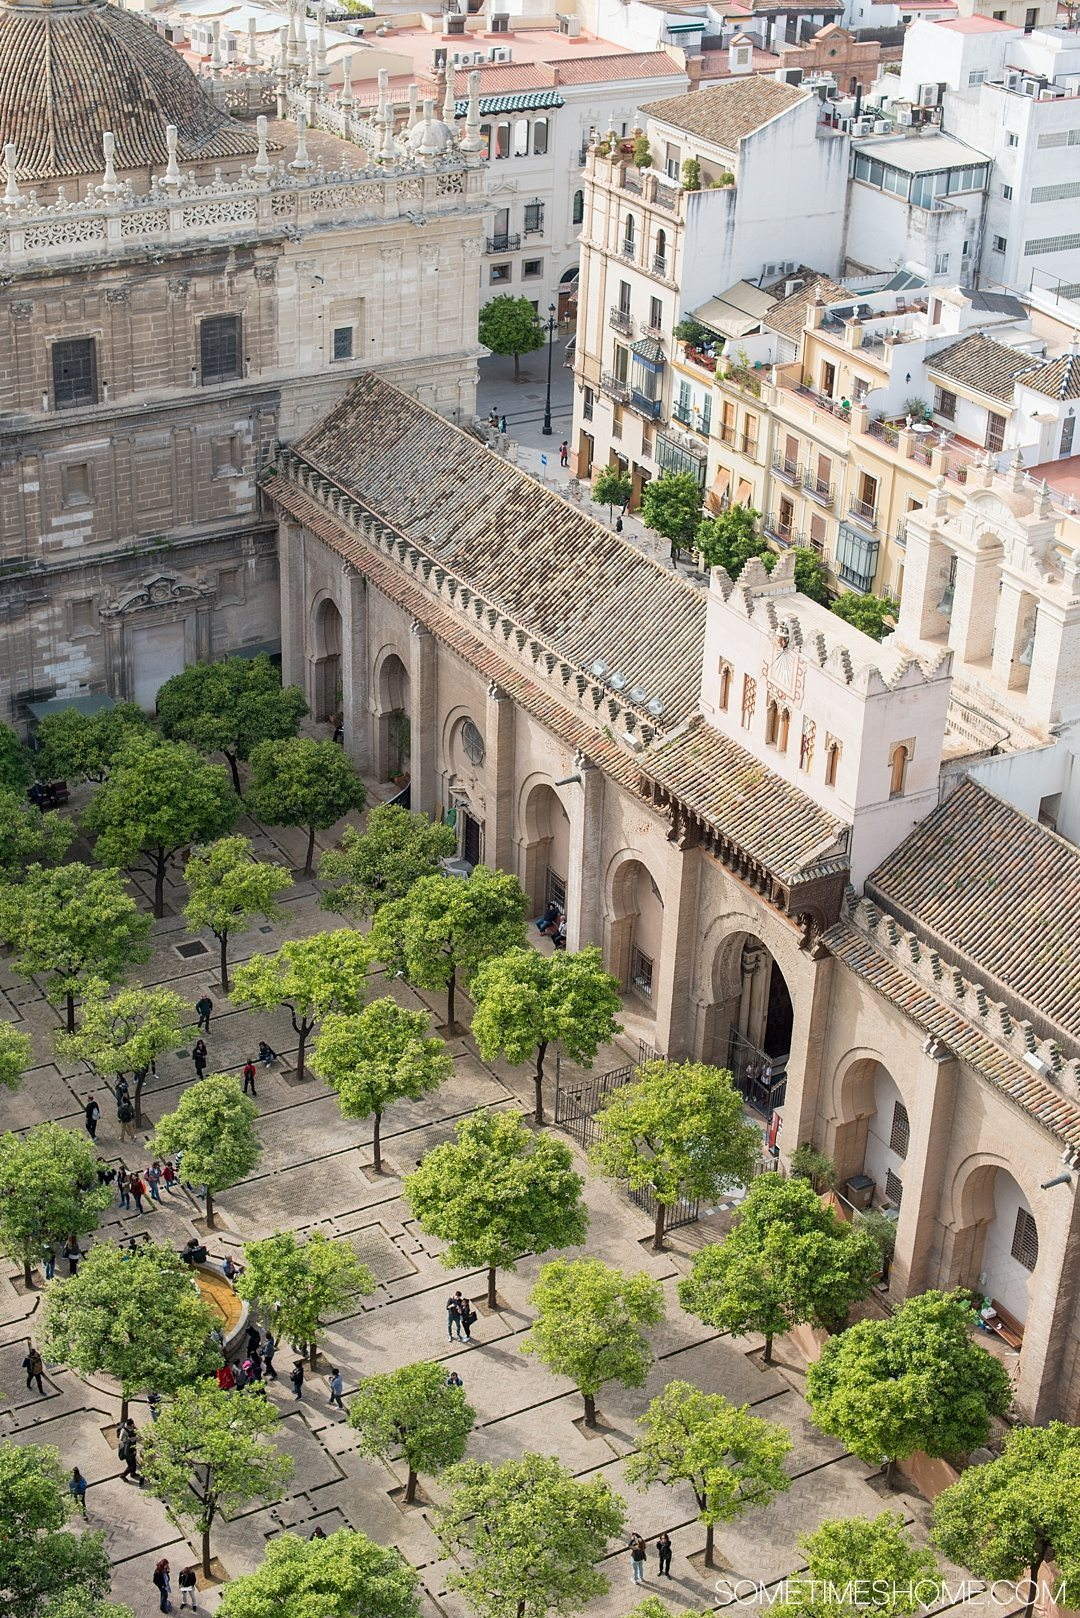 You Haven't Seen Seville Until You've Visited These 3 Sites, by Sometimes Home travel blog. Photo of Seville Cathedral courtyard and orange trees from an aerial view.